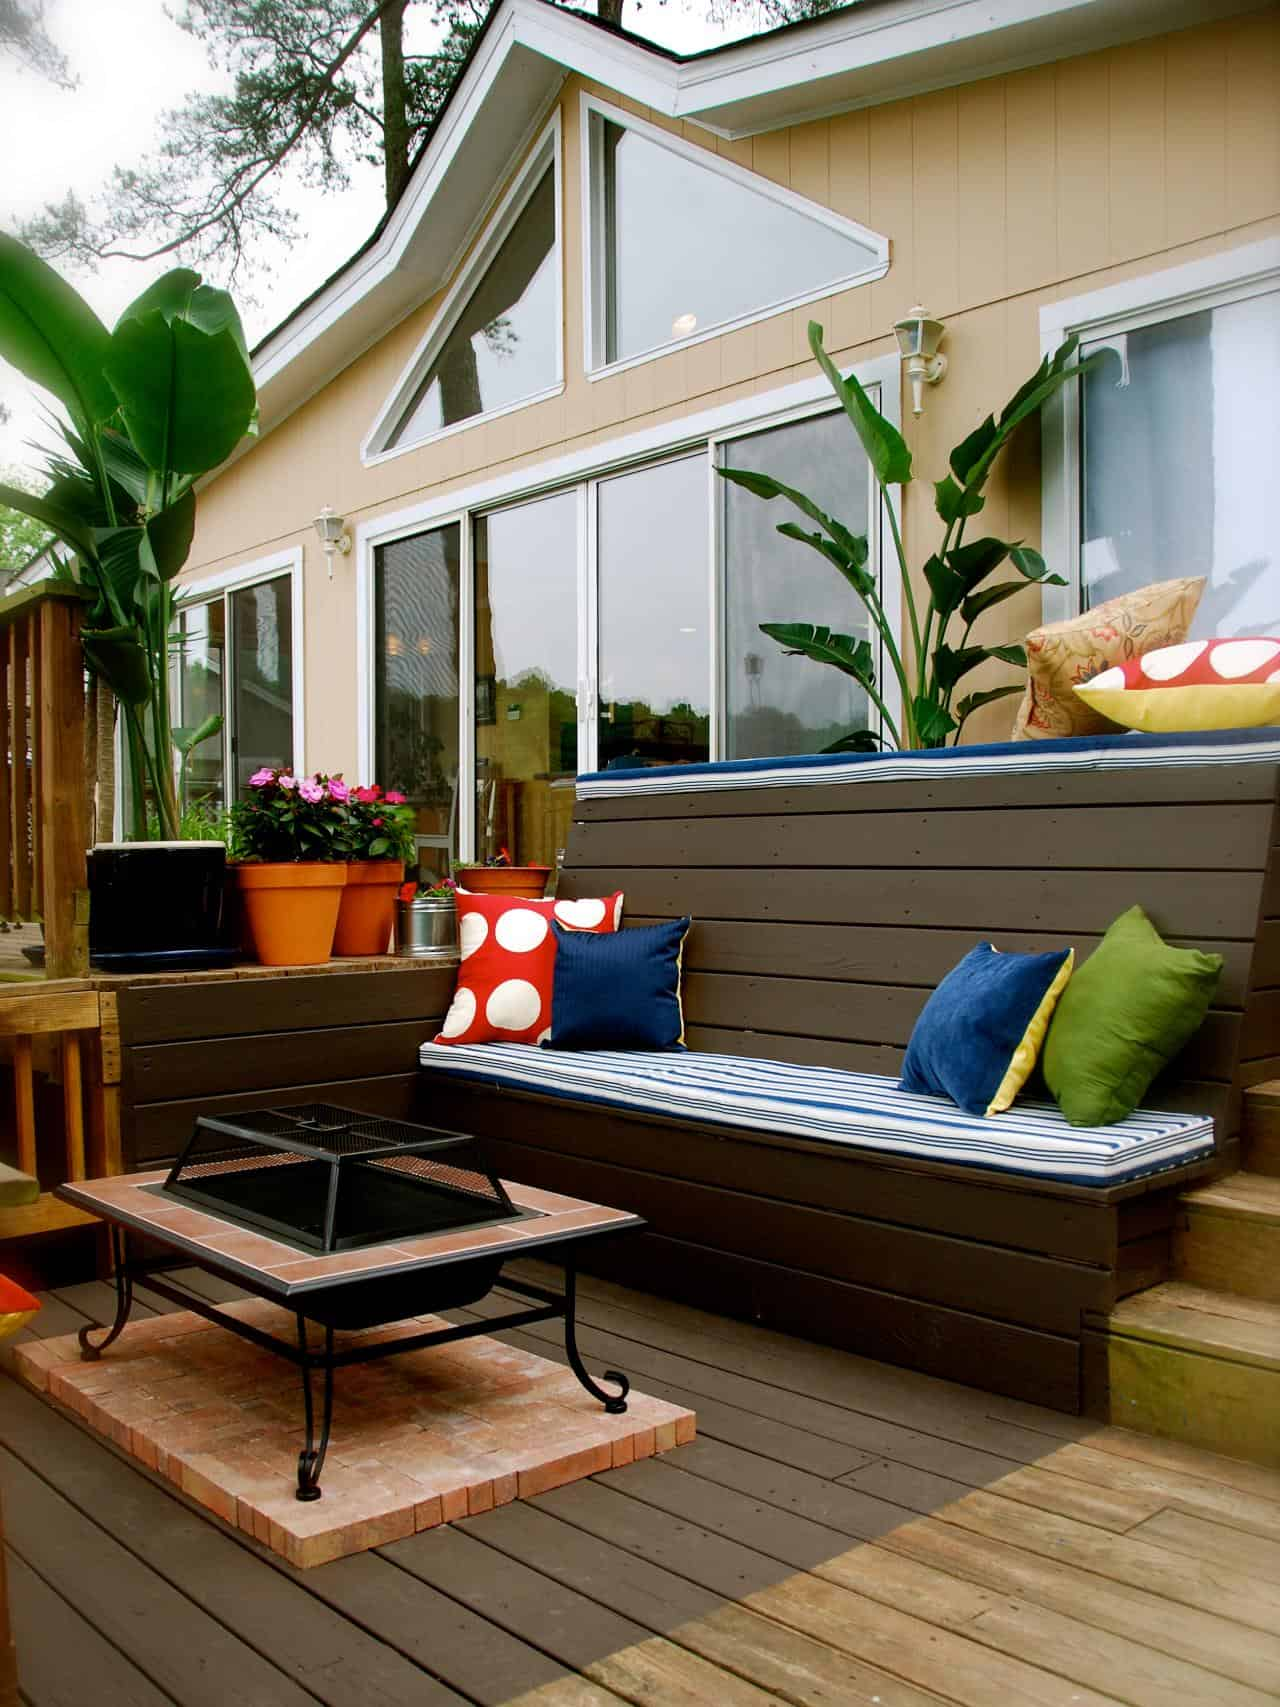 custom bench  10 Ways to Make the Most out of a Small Outdoor Space